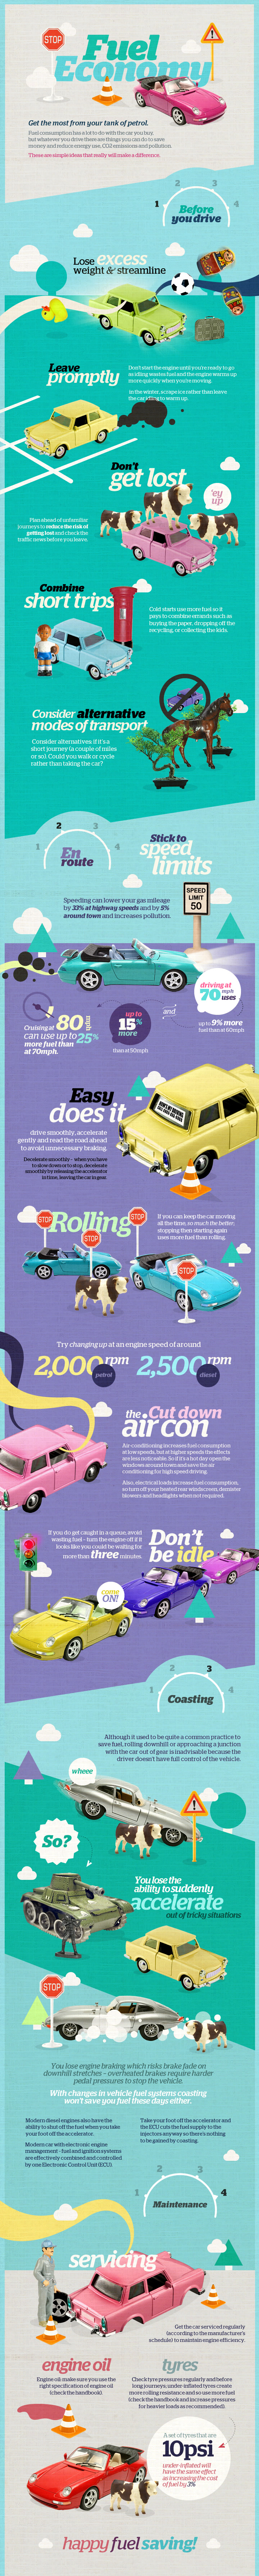 better-fuel-economy-tips-infographic